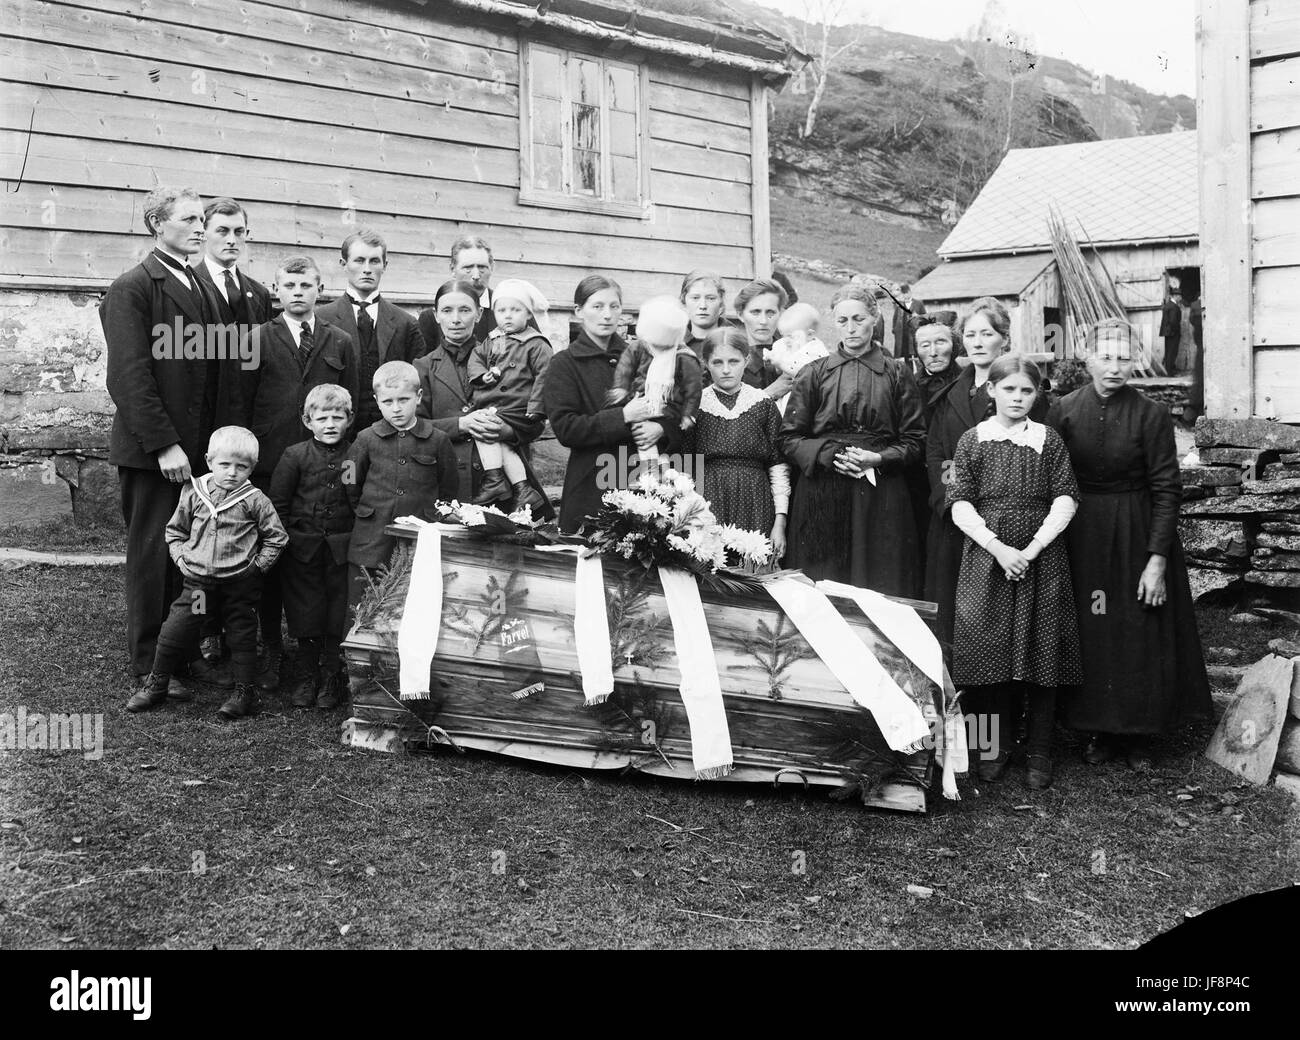 Family and relatives gathered around a coffin 33186452190 o - Stock Image